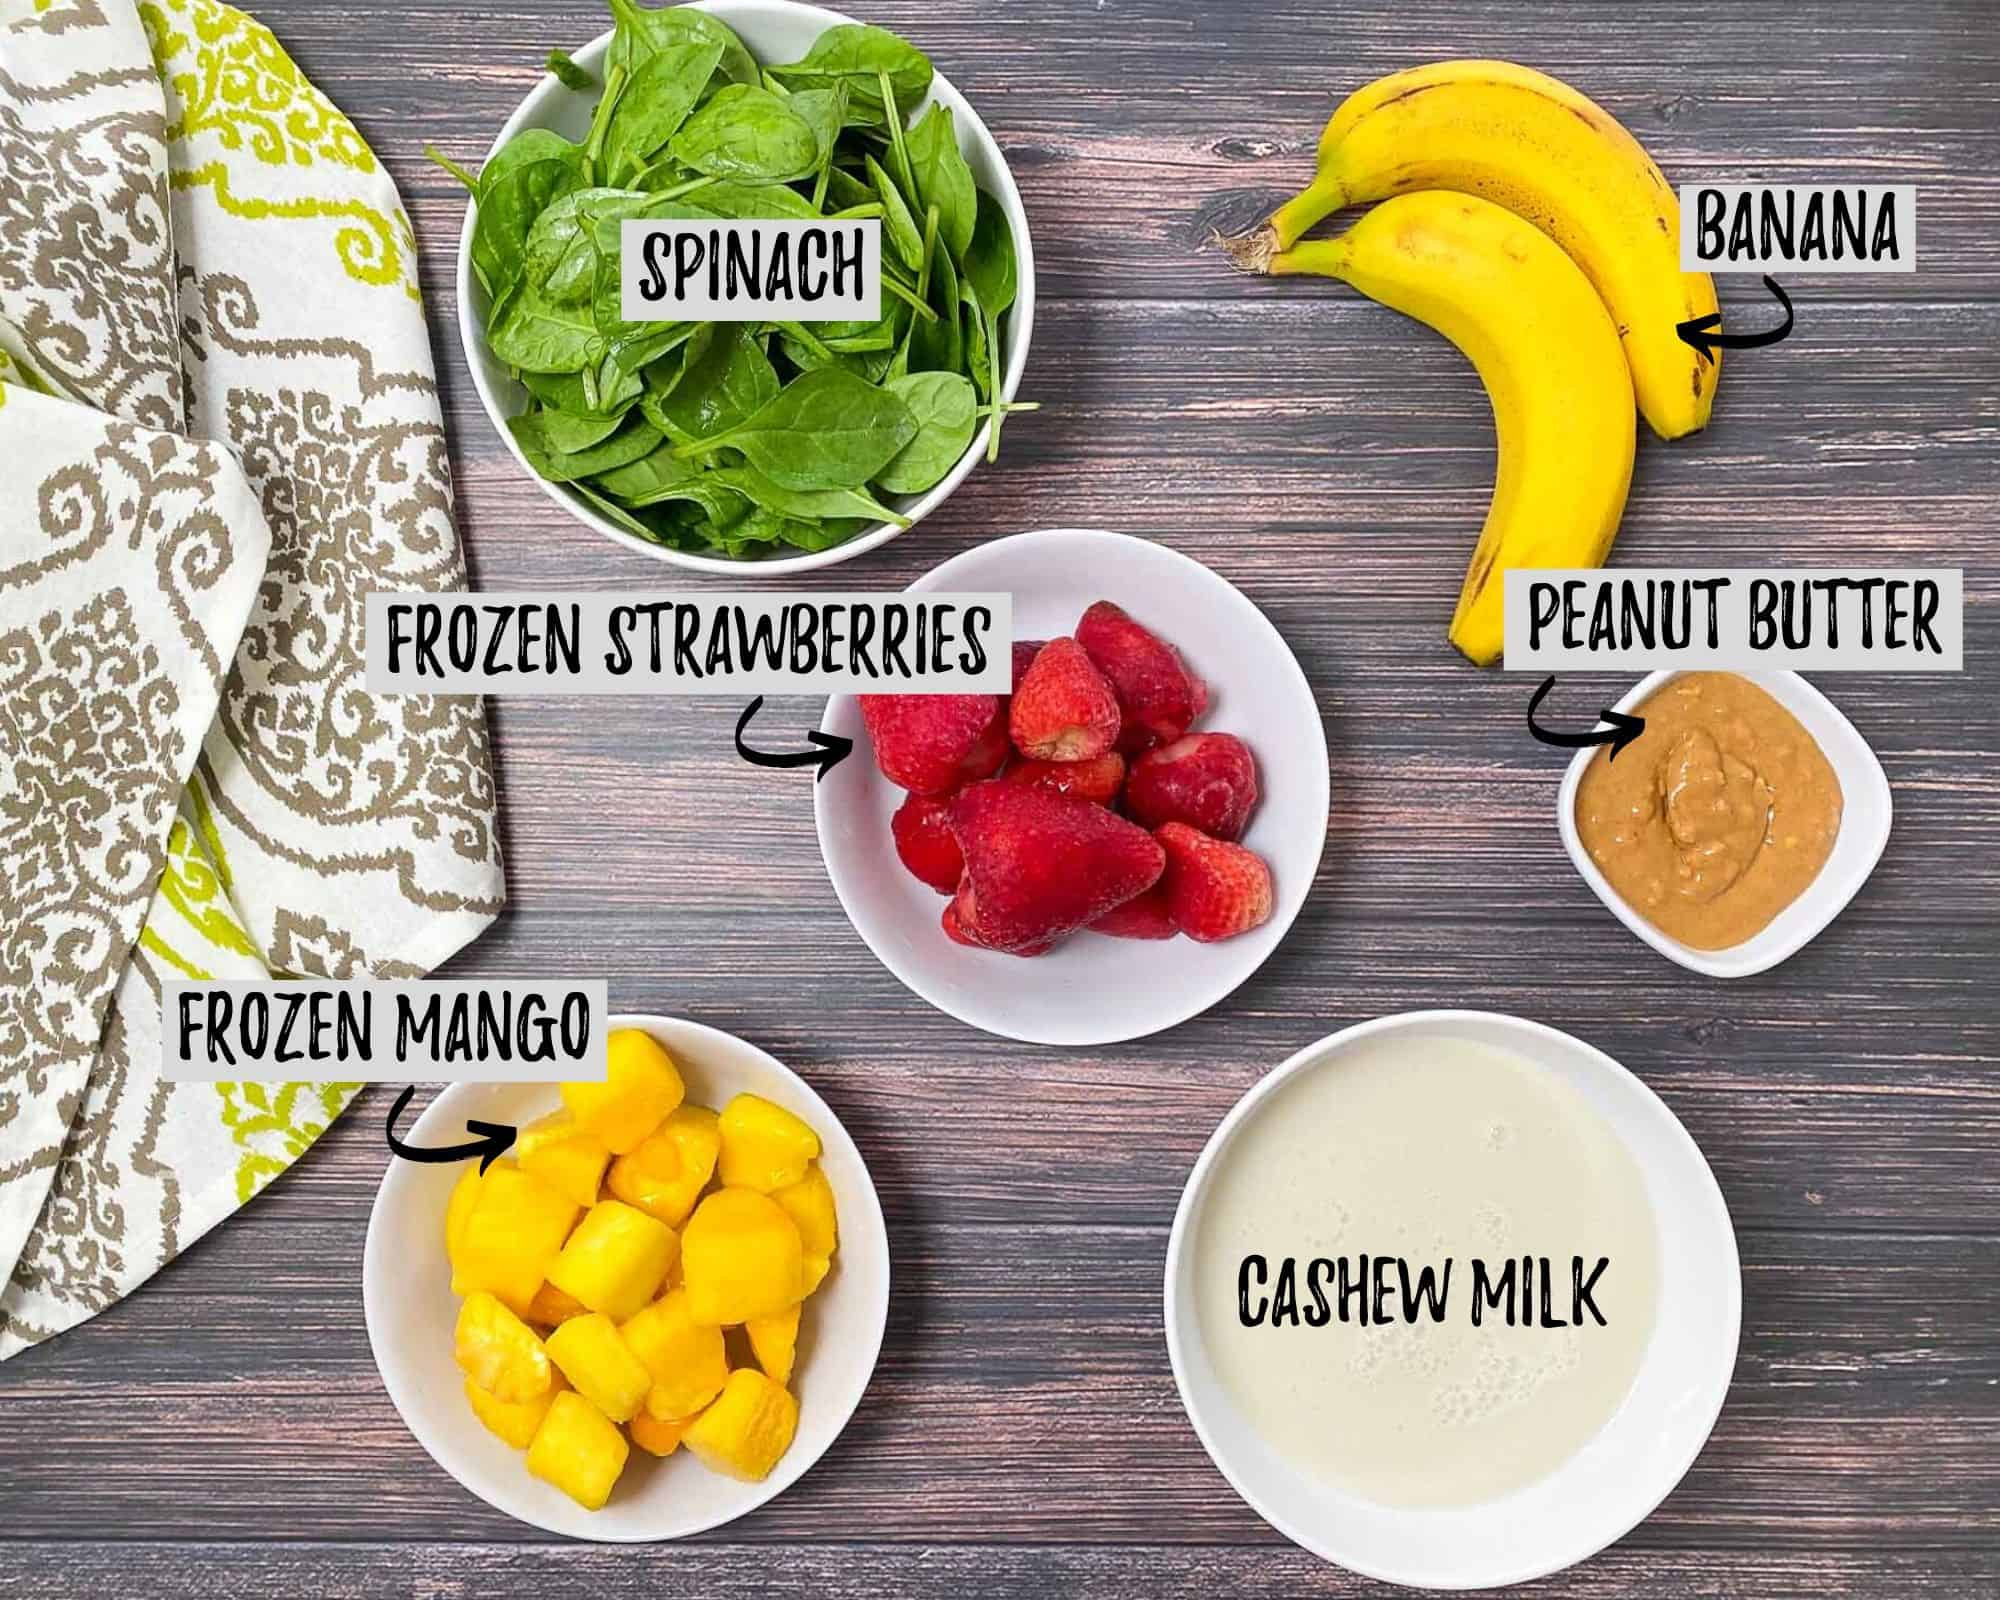 bananas, bowl of spinach, bowl of milk, strawberries, mango and peanut butter on grey deck